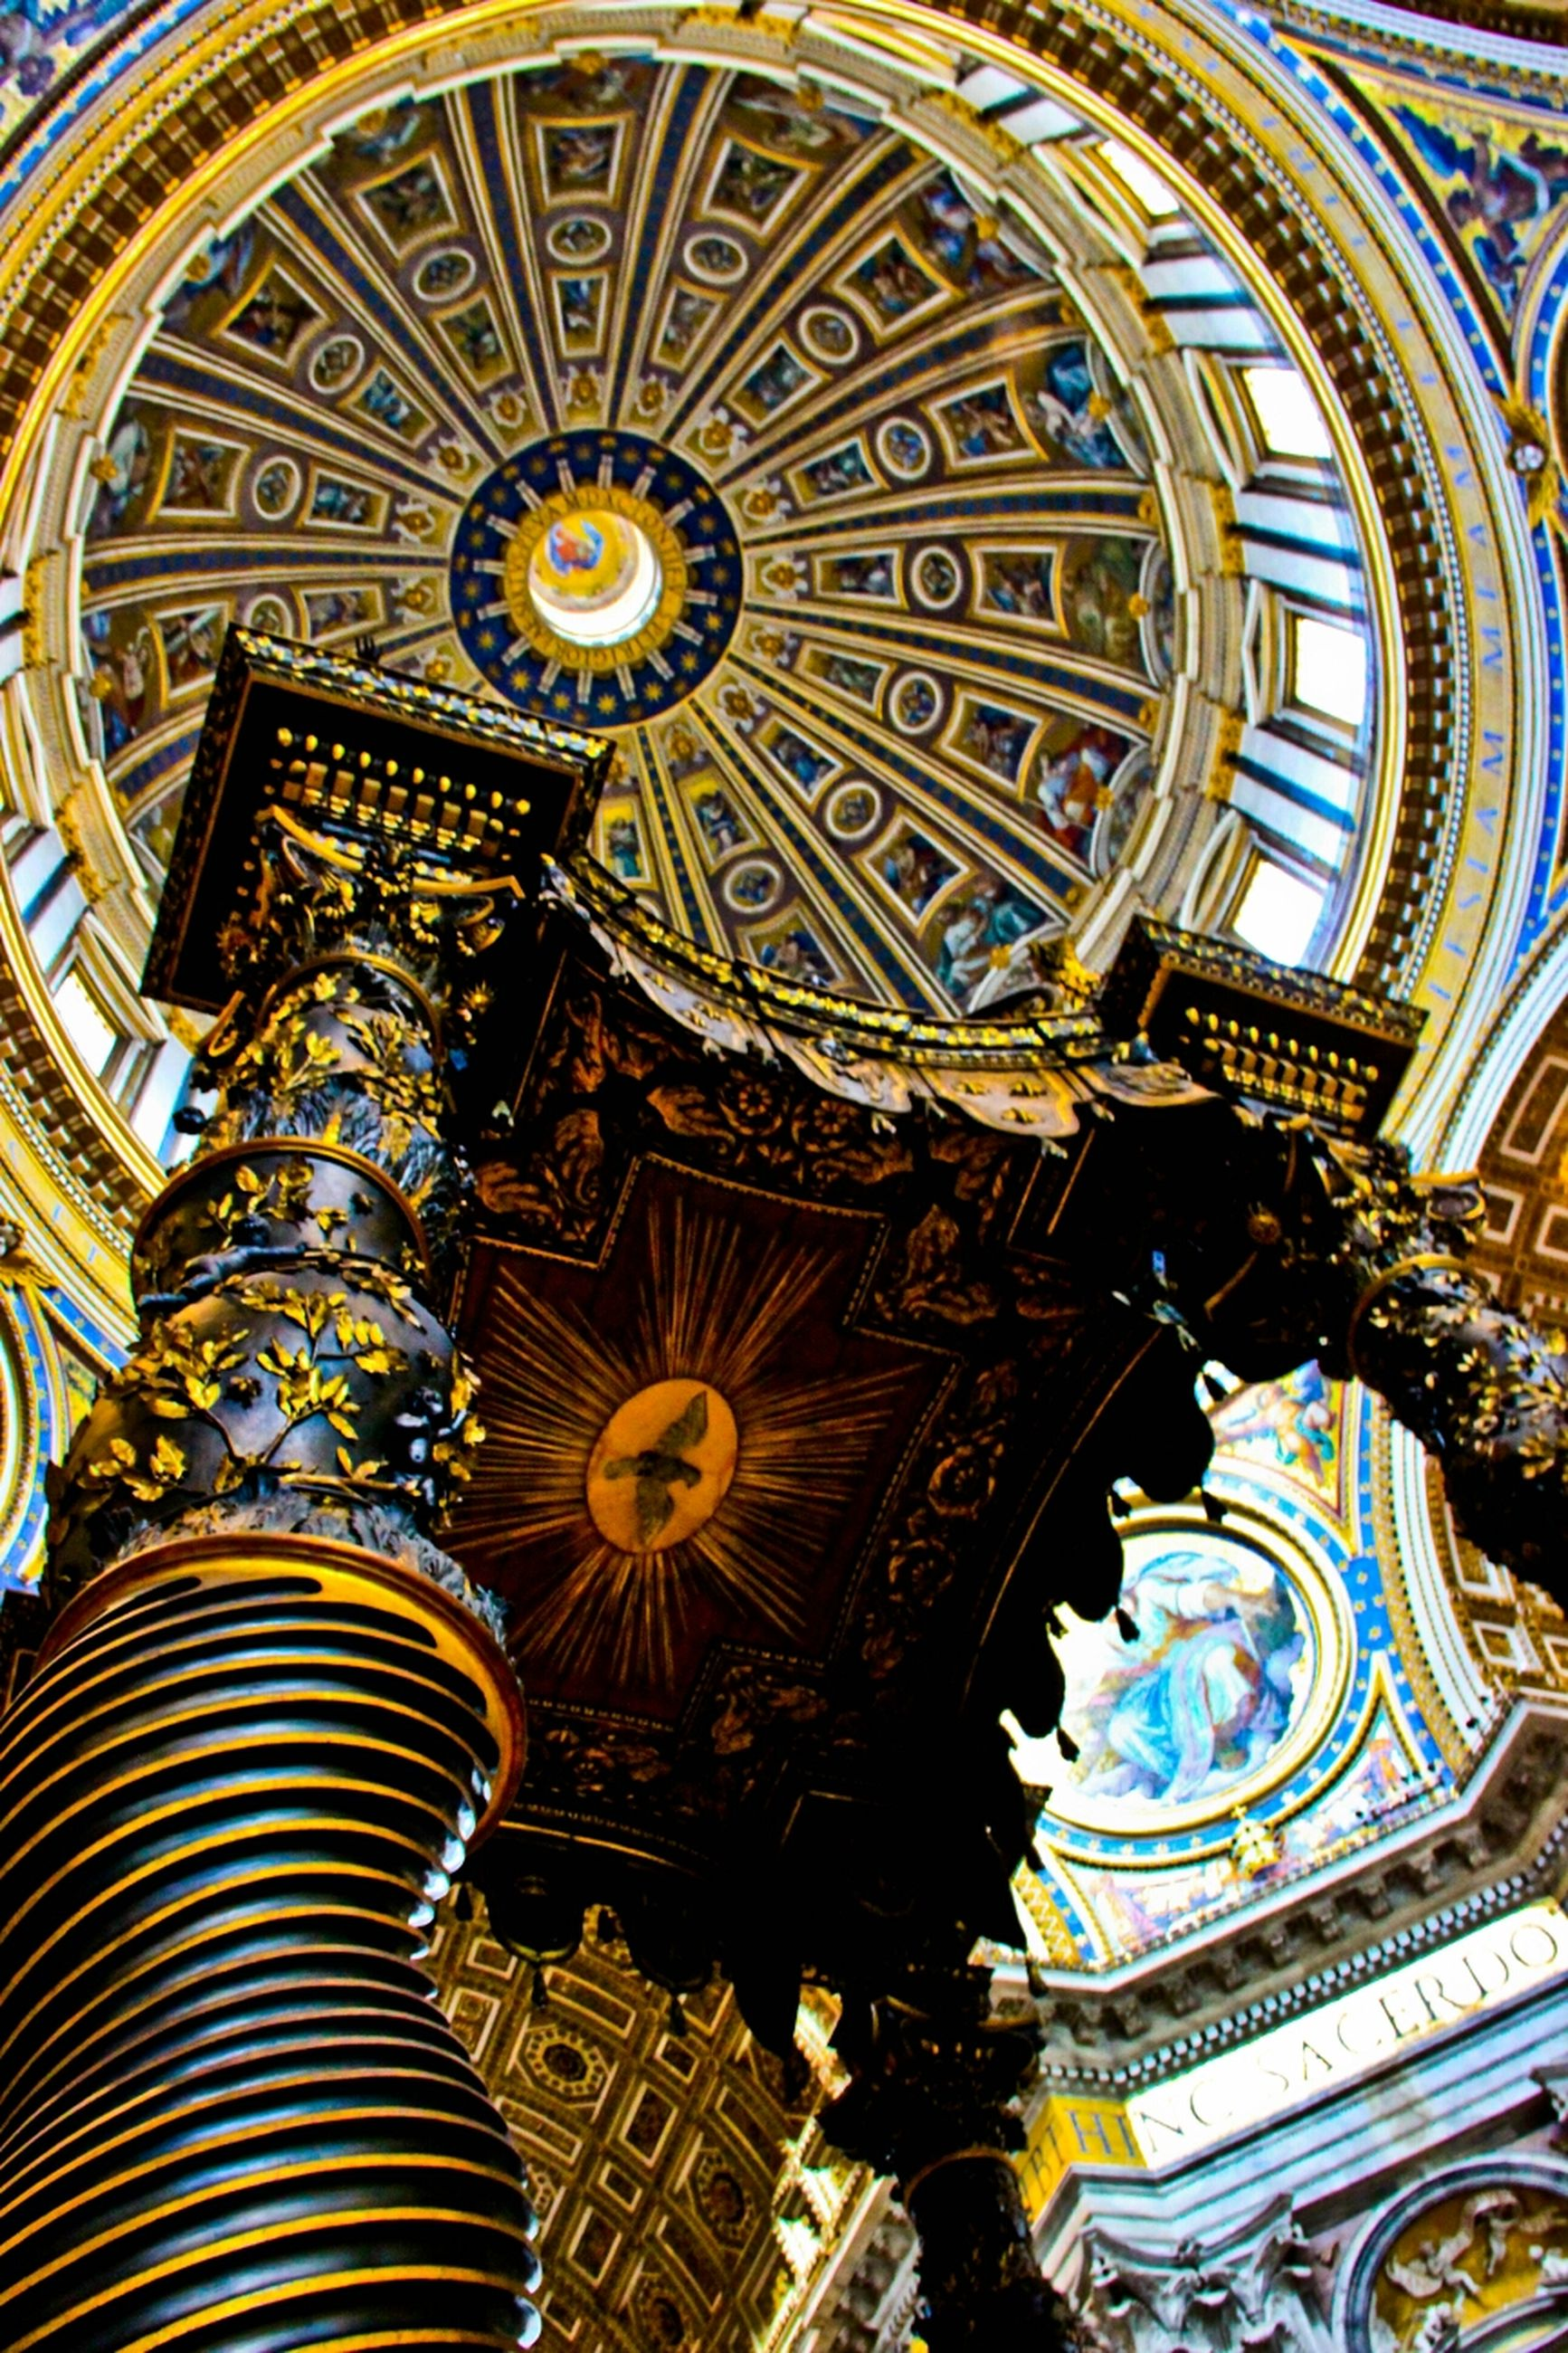 place of worship, architecture, religion, built structure, low angle view, spirituality, ornate, church, indoors, famous place, architectural feature, cathedral, design, ceiling, travel destinations, tourism, pattern, dome